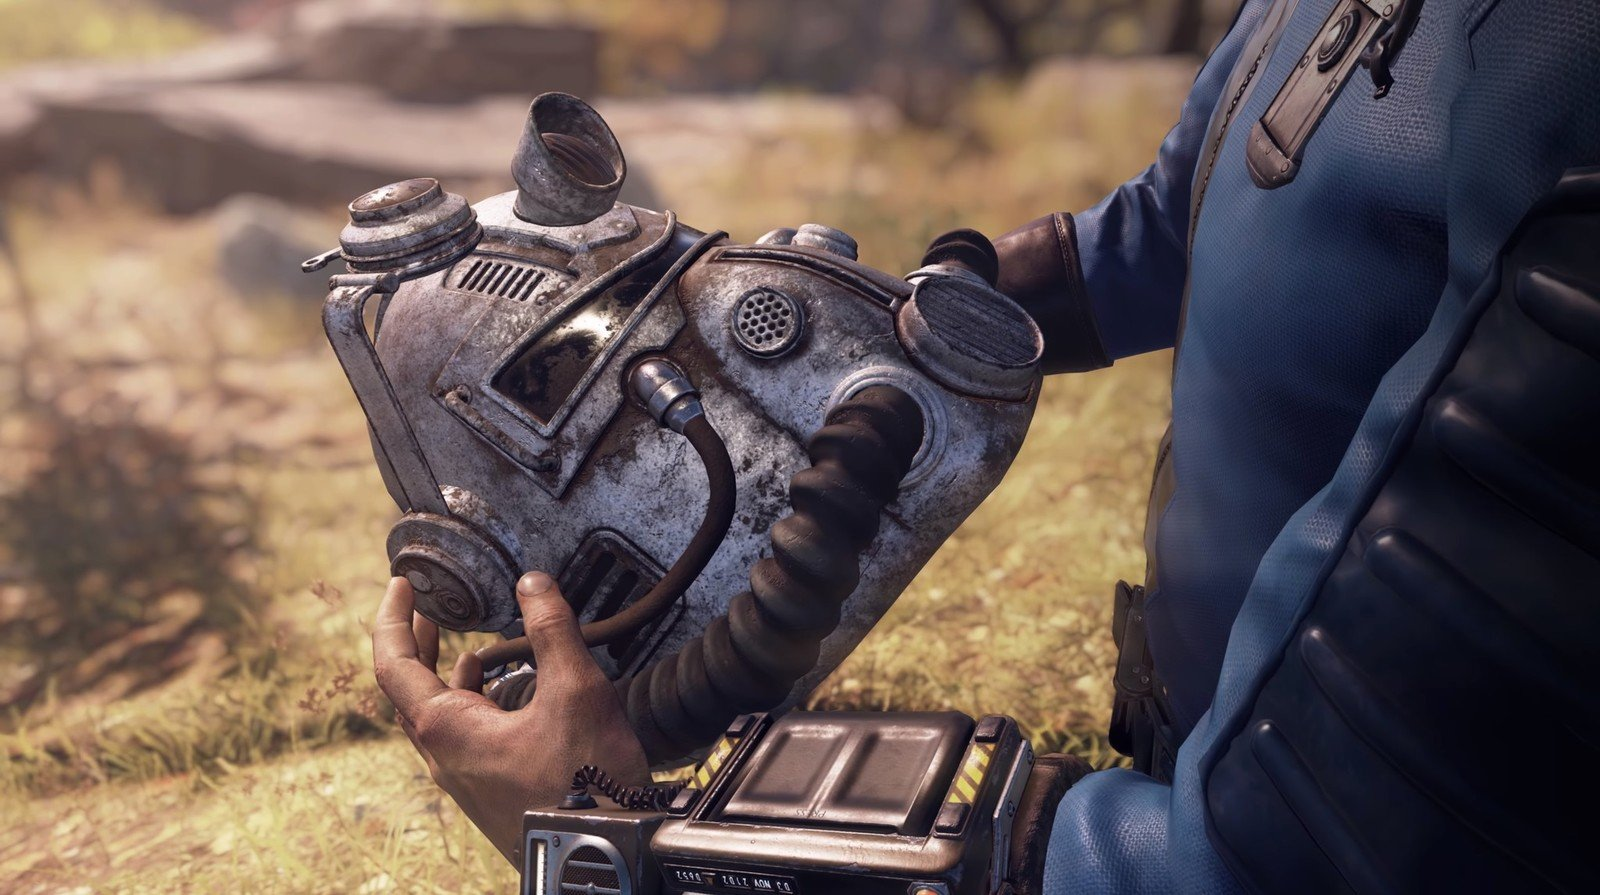 Where to find Power Armor in Fallout 76